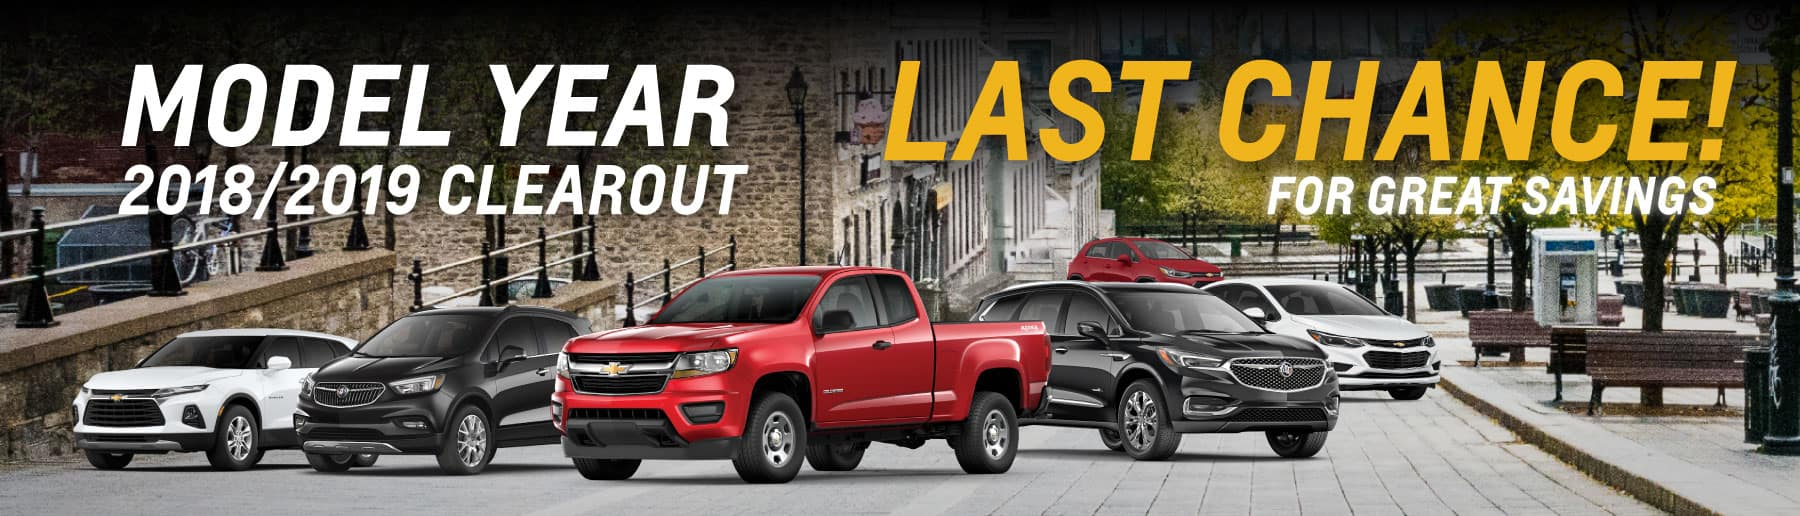 2018-2019 Clearout! Last Chance for Incredible Savings